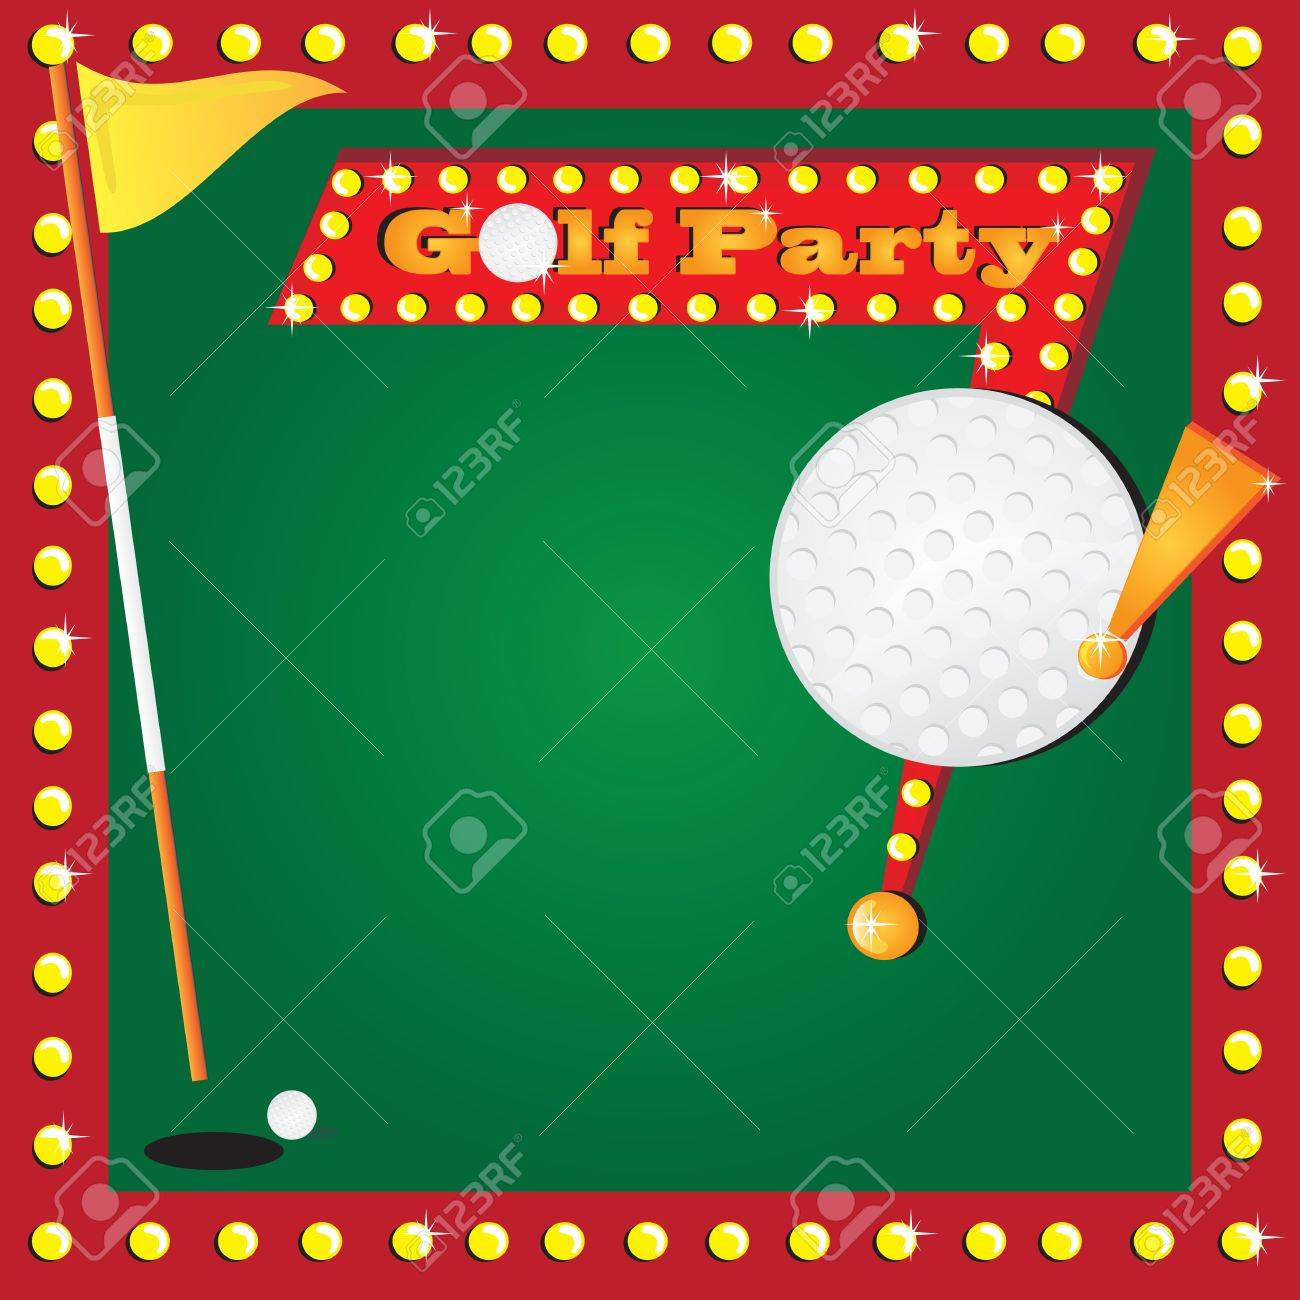 Super Fun Golf Or Miniature Golf Party Invitation With Glowing – Mini Golf Birthday Party Invitations